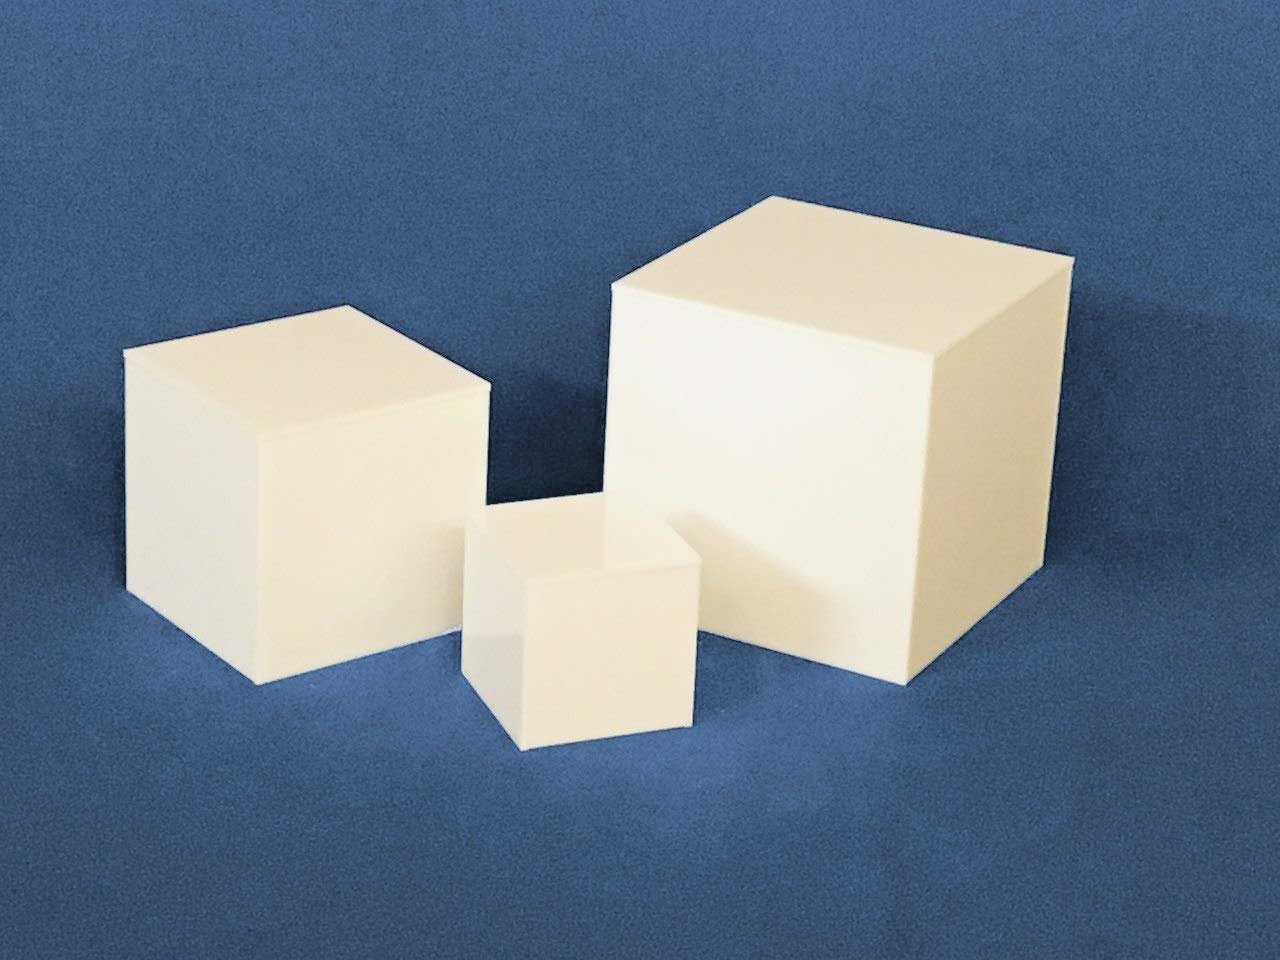 Clear Stands Economy Cubes - White Square Cube 8 inch, case of 8